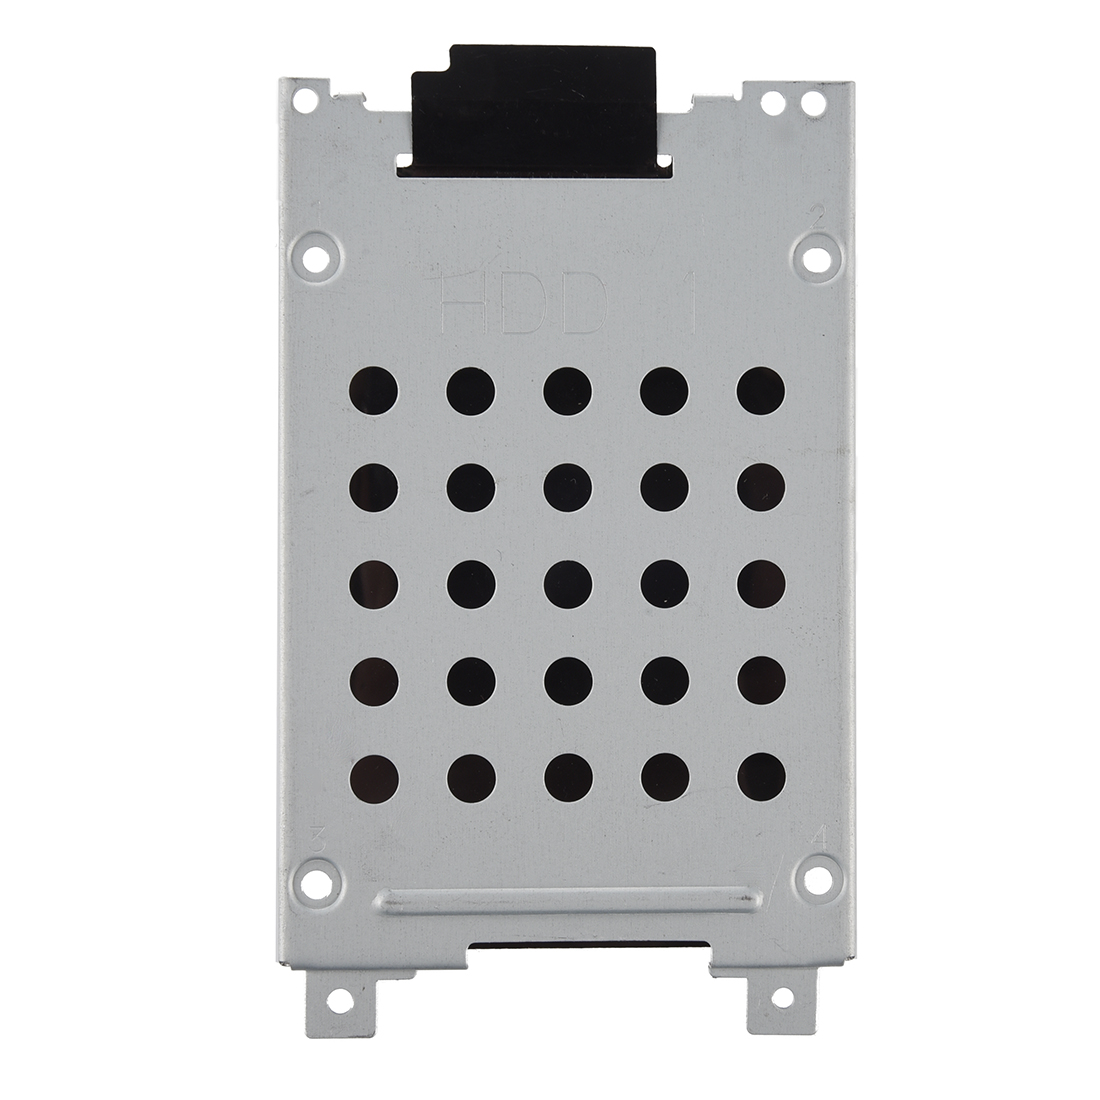 Hard Drive Caddy Connector For Inspiron 1720 1721 - Come With8 Pcs Screws And A Hard Disk Connector